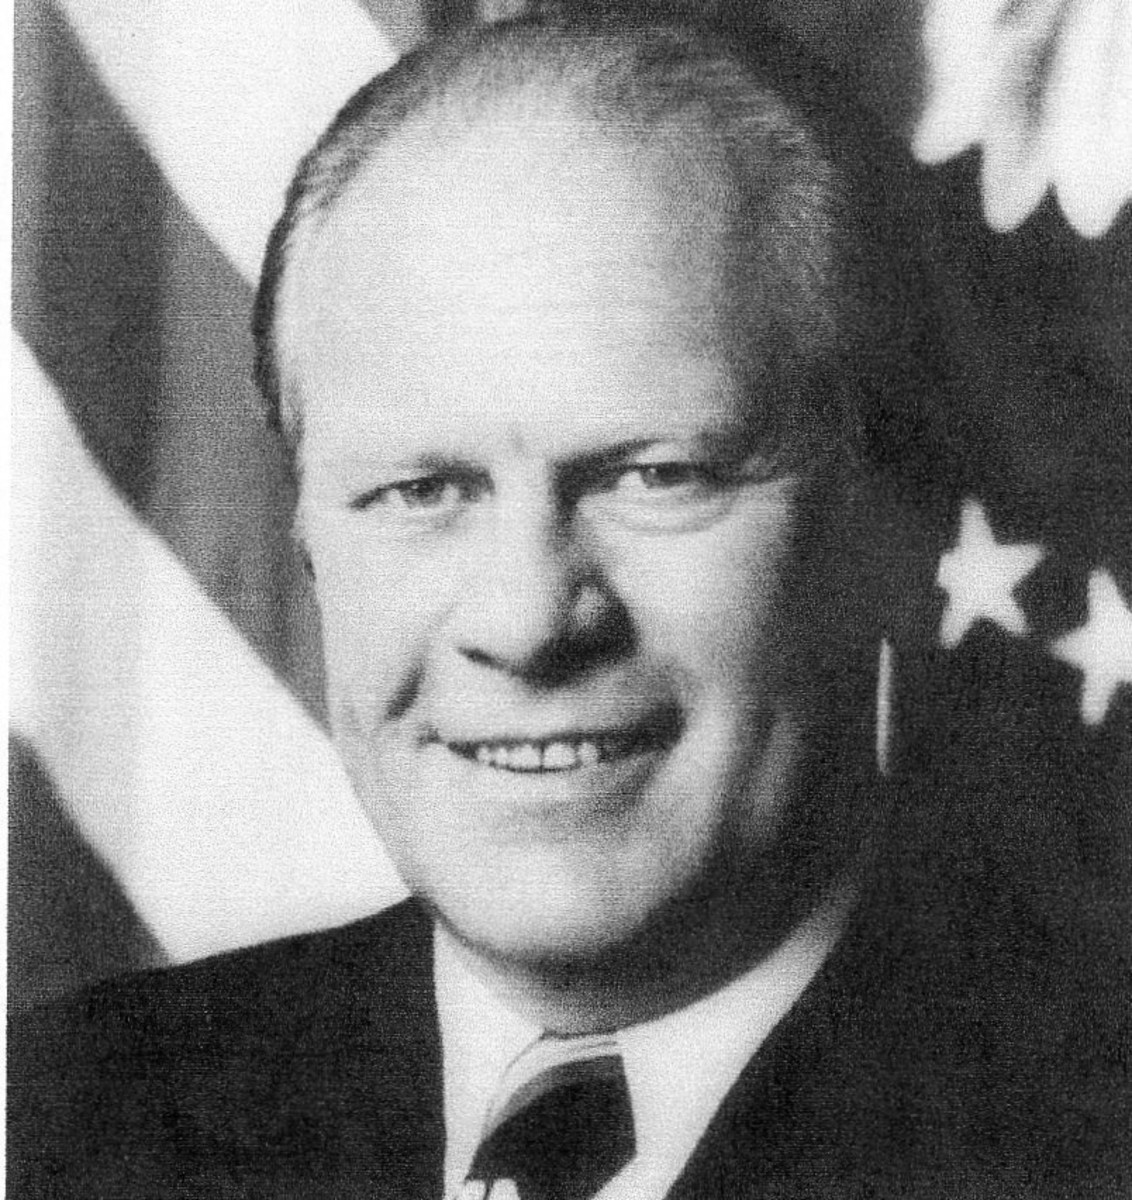 Gerald Ford, the thirty-eighth president, Republican, 1974-1977